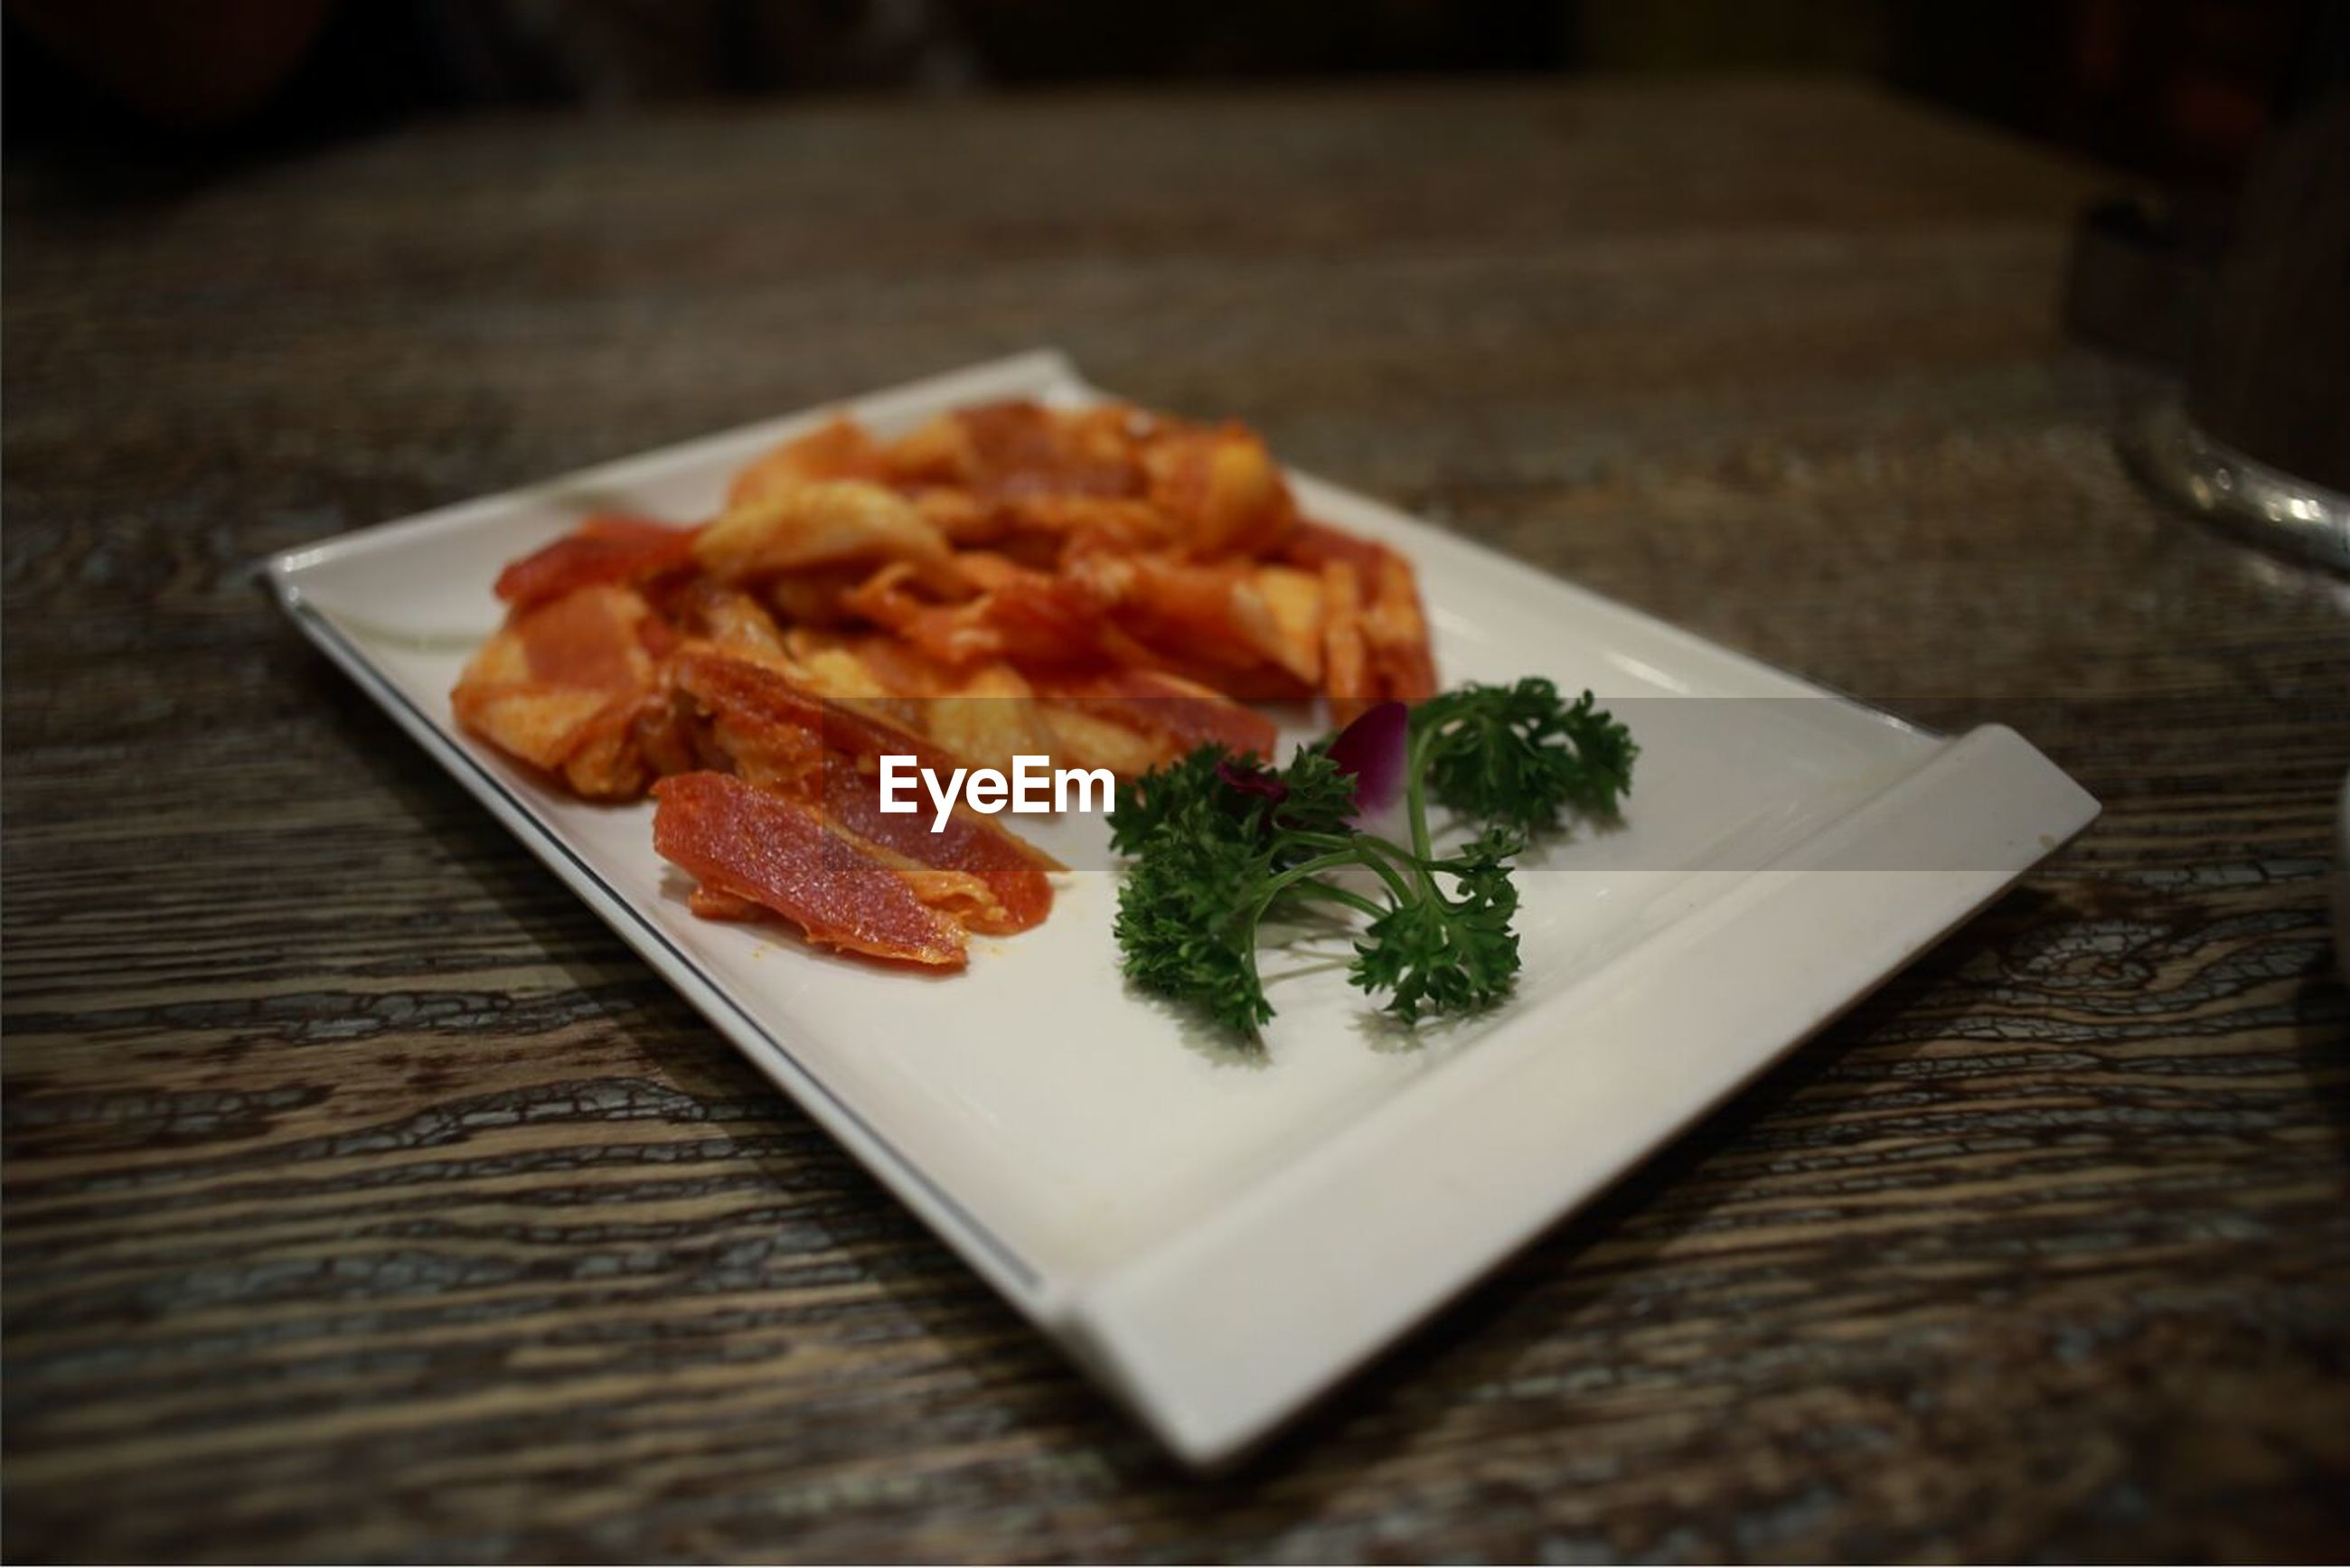 food and drink, food, indoors, freshness, table, ready-to-eat, plate, still life, meal, close-up, serving size, healthy eating, selective focus, indulgence, meat, restaurant, served, cooked, vegetable, no people